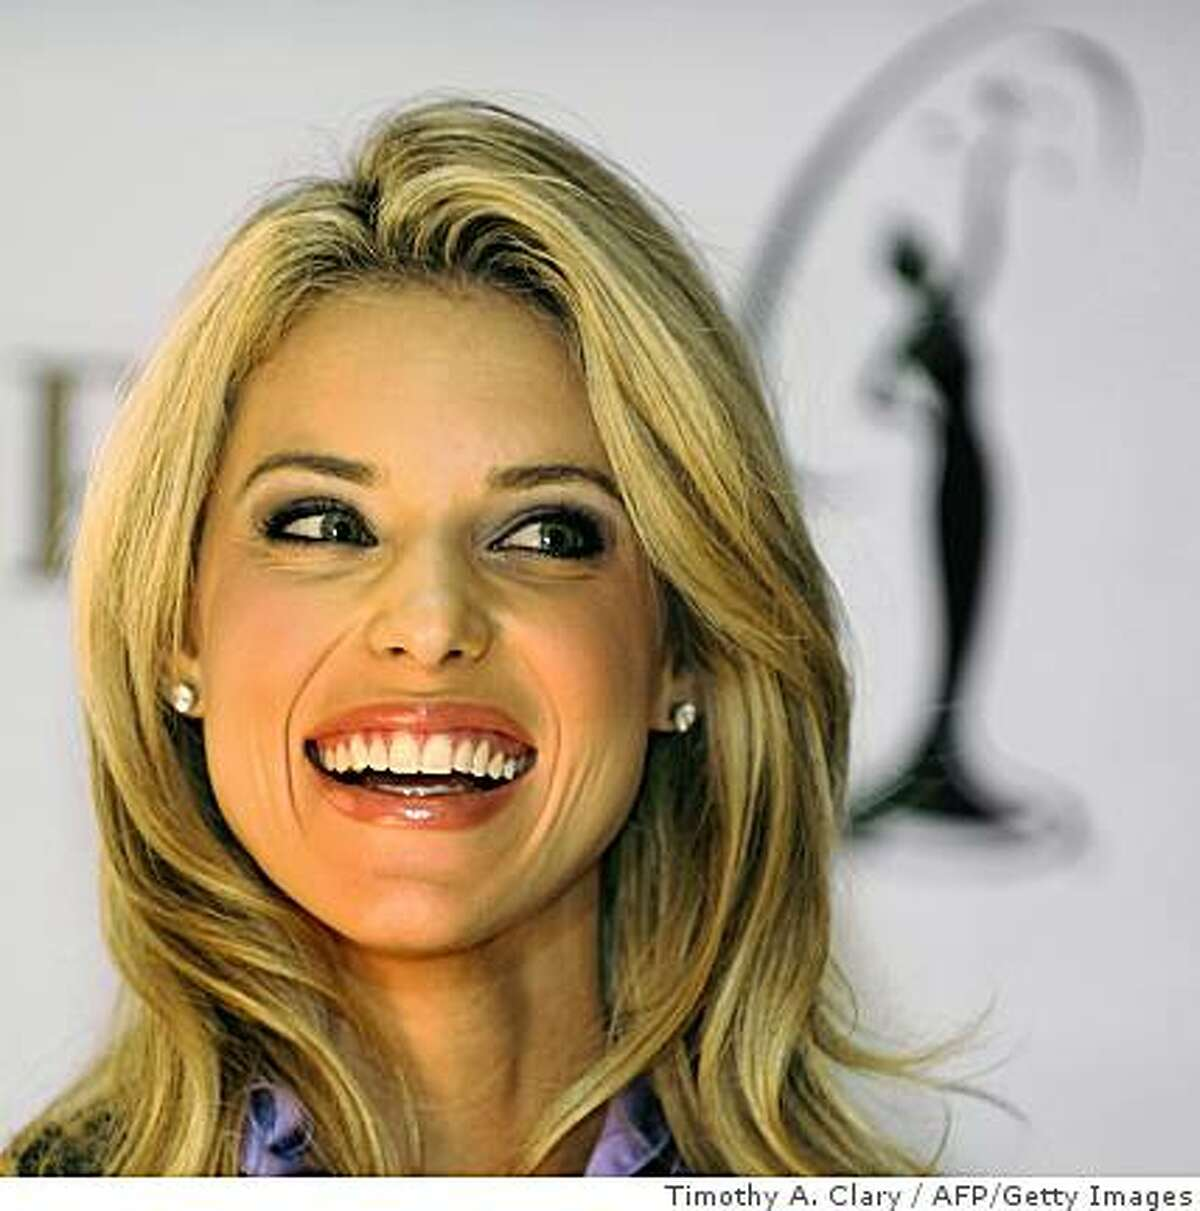 Miss California USA Carrie Prejean smiles during a press conference at Trump Tower on May 12, 2009 after Miss USA pageant owner Donald Trump announced that she will keep her title despite controversy over semi-nude photos and charges by state pageant officials that she had abandoned her duties to devote time in opposition to same-sex marriage. TOPSHOTS / AFP PHOTO / TIMOTHY A. CLARY (Photo credit should read TIMOTHY A. CLARY/AFP/Getty Images)